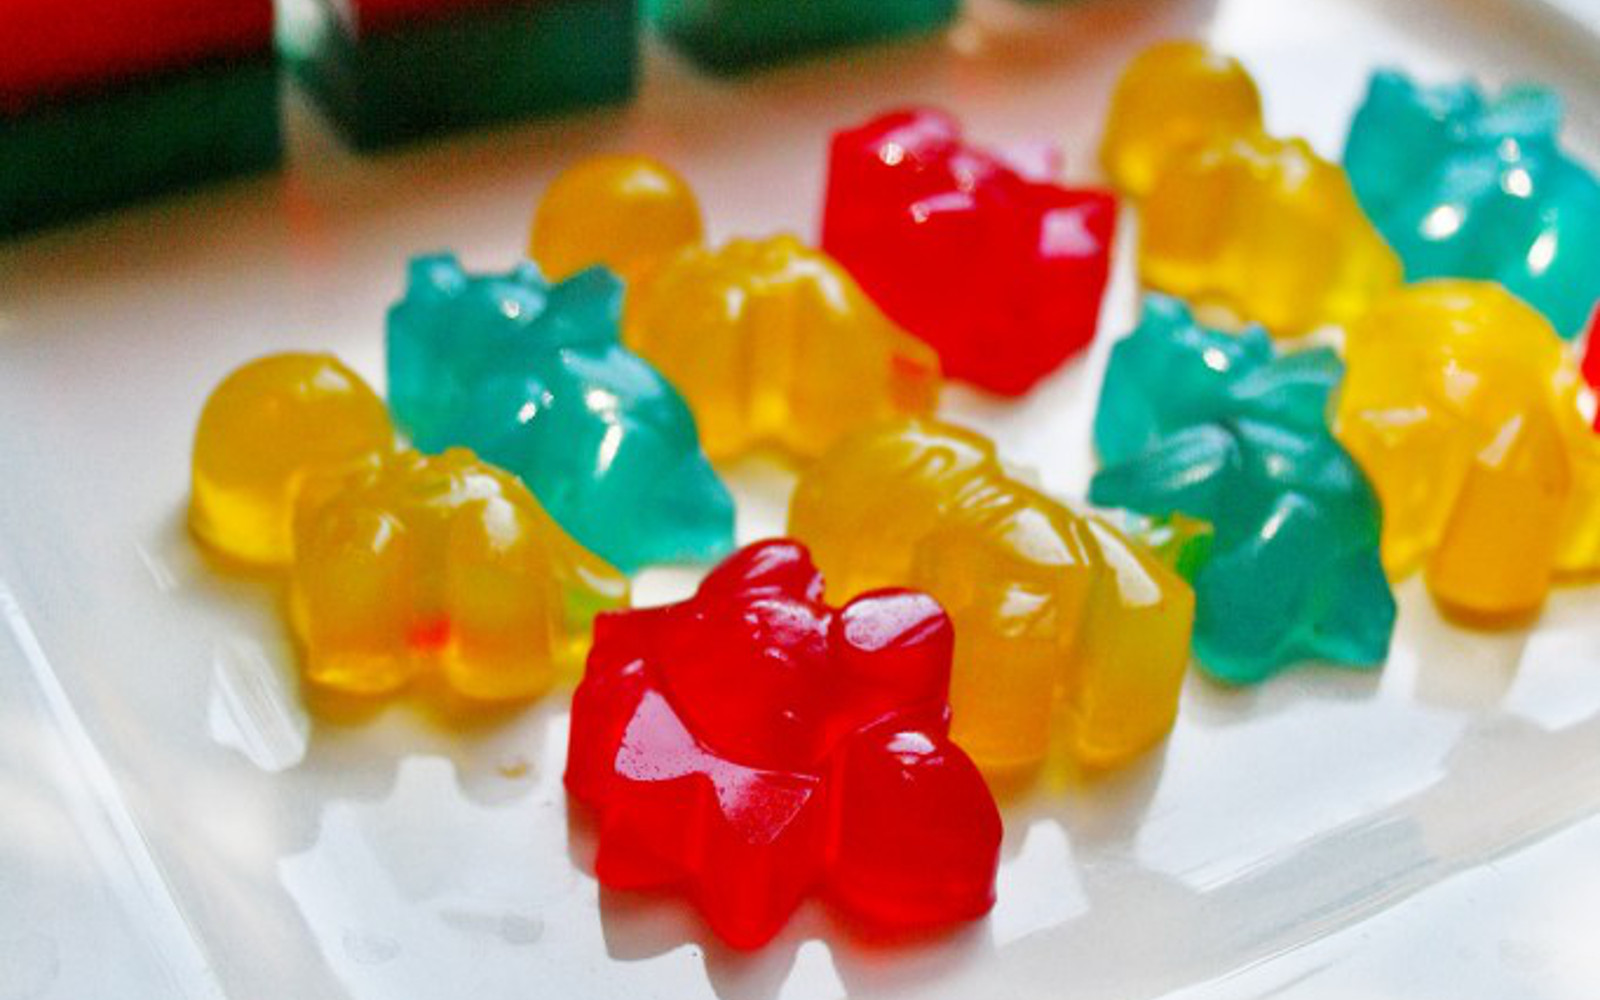 Homemade Gummy Bears Vegan Gluten Free One Green Planet,Types Of Onions For Cooking